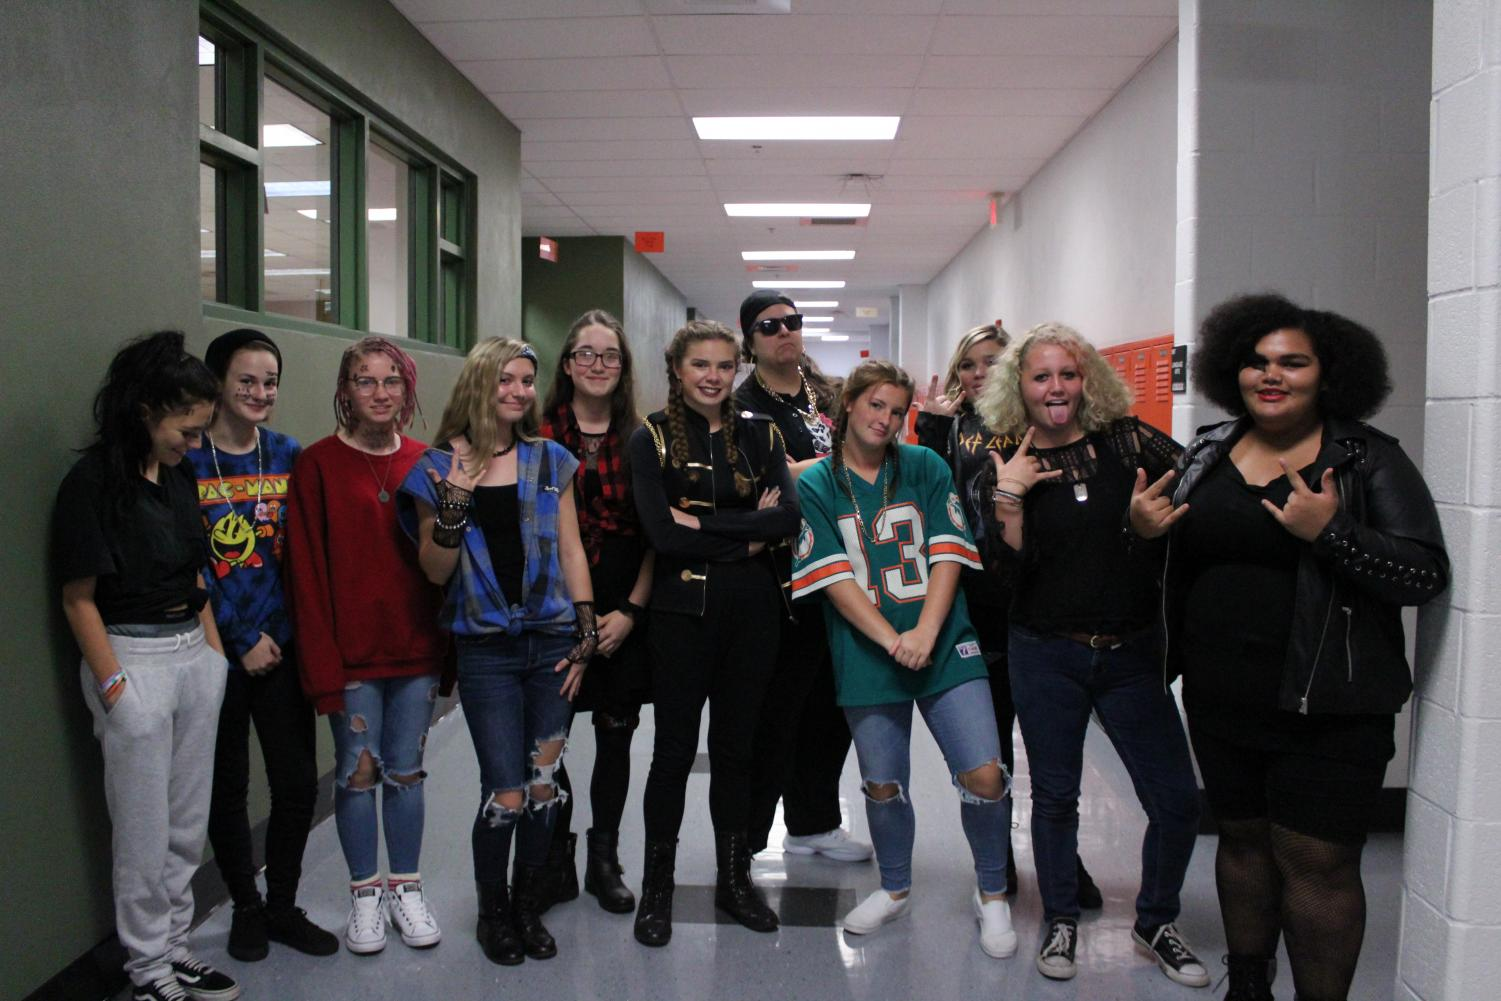 HHS+students+pose+together%2C+showing+their+tiger+pride.+